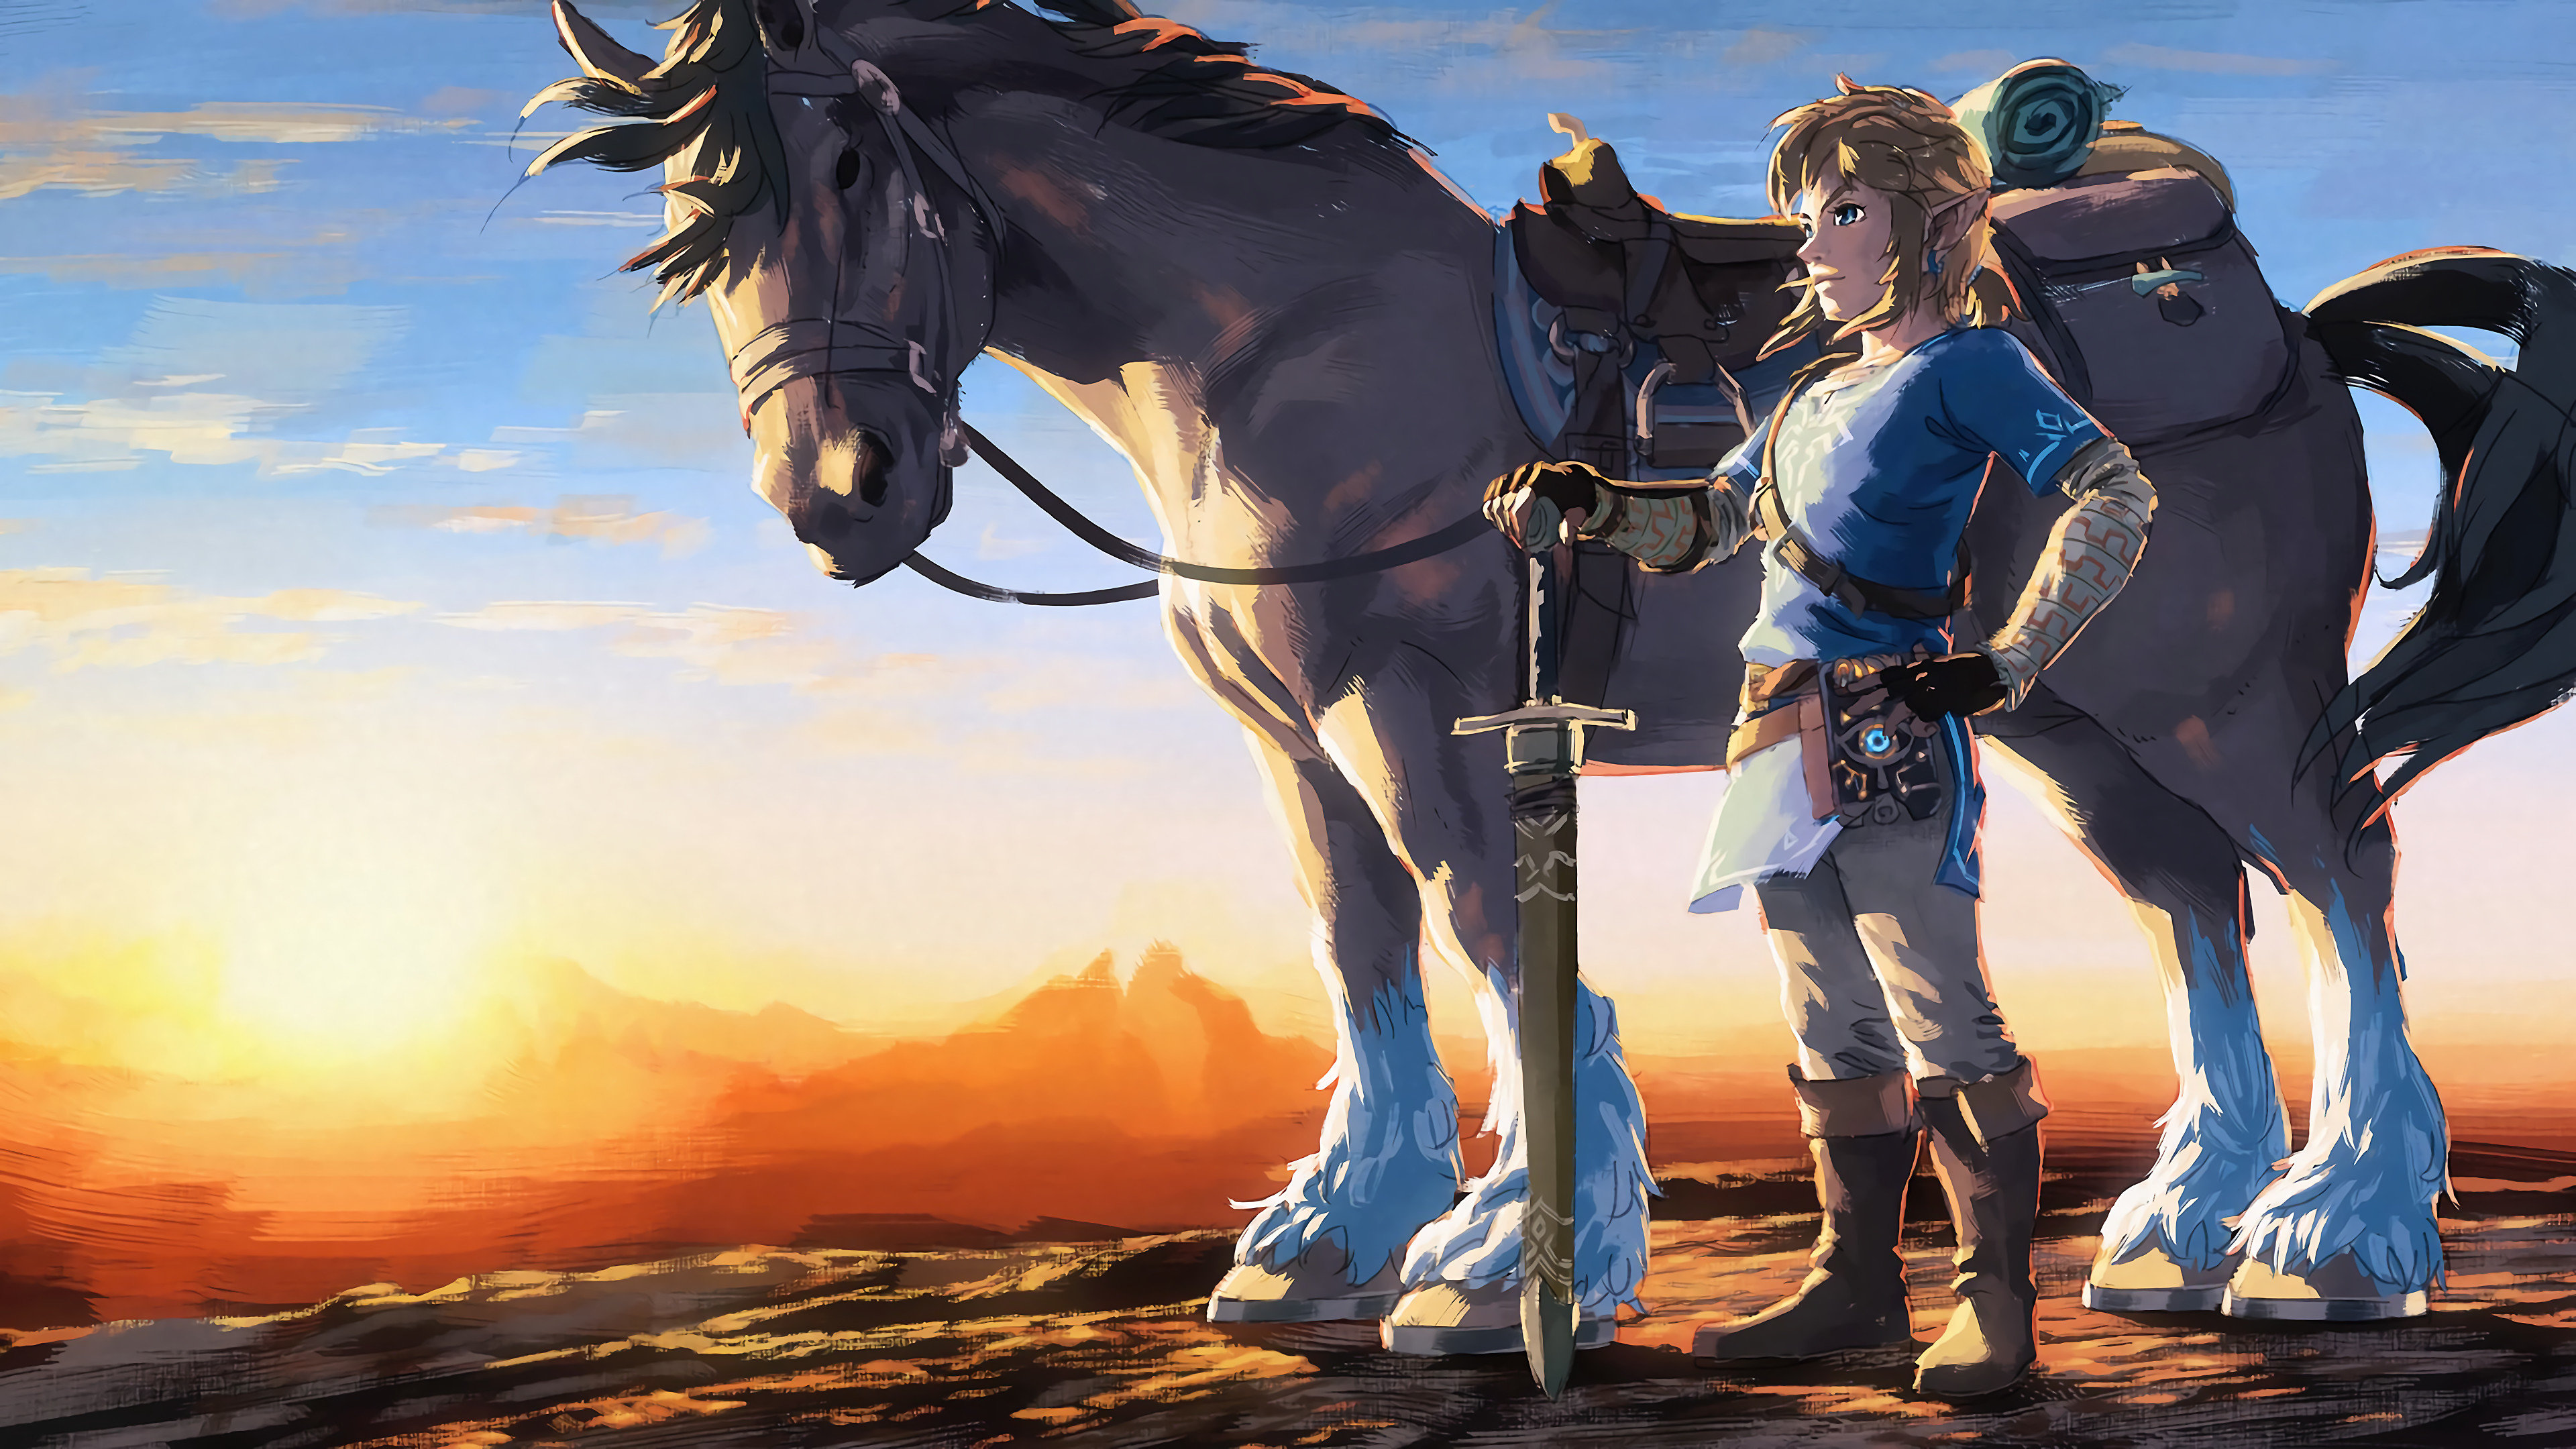 Breath Of The Wild Wallpaper Hd: The Legend Of Zelda: Breath Of The Wild Wallpapers HD For